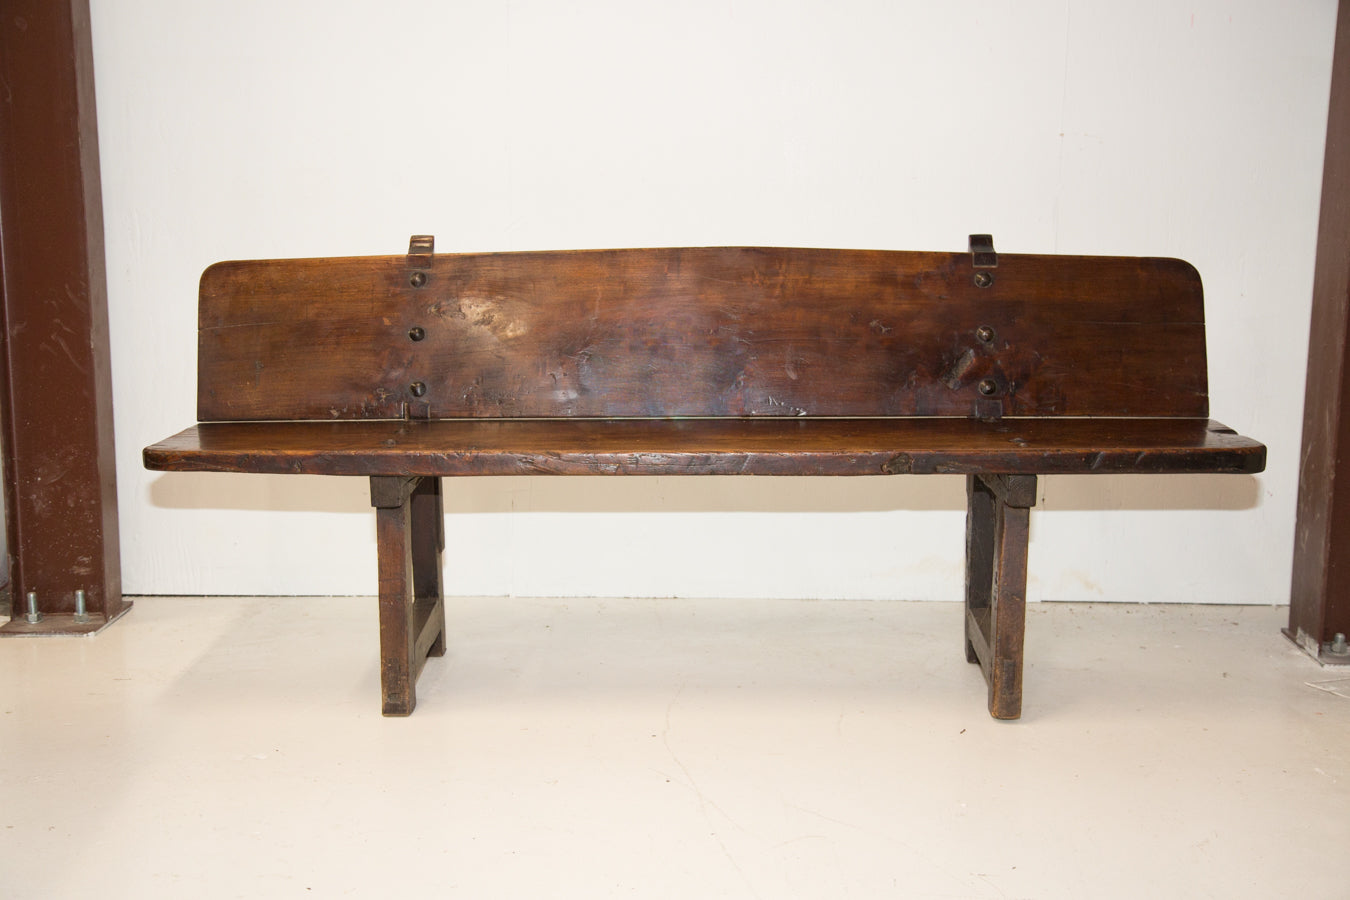 Antique French Louis XIII 17th Century Long Bench